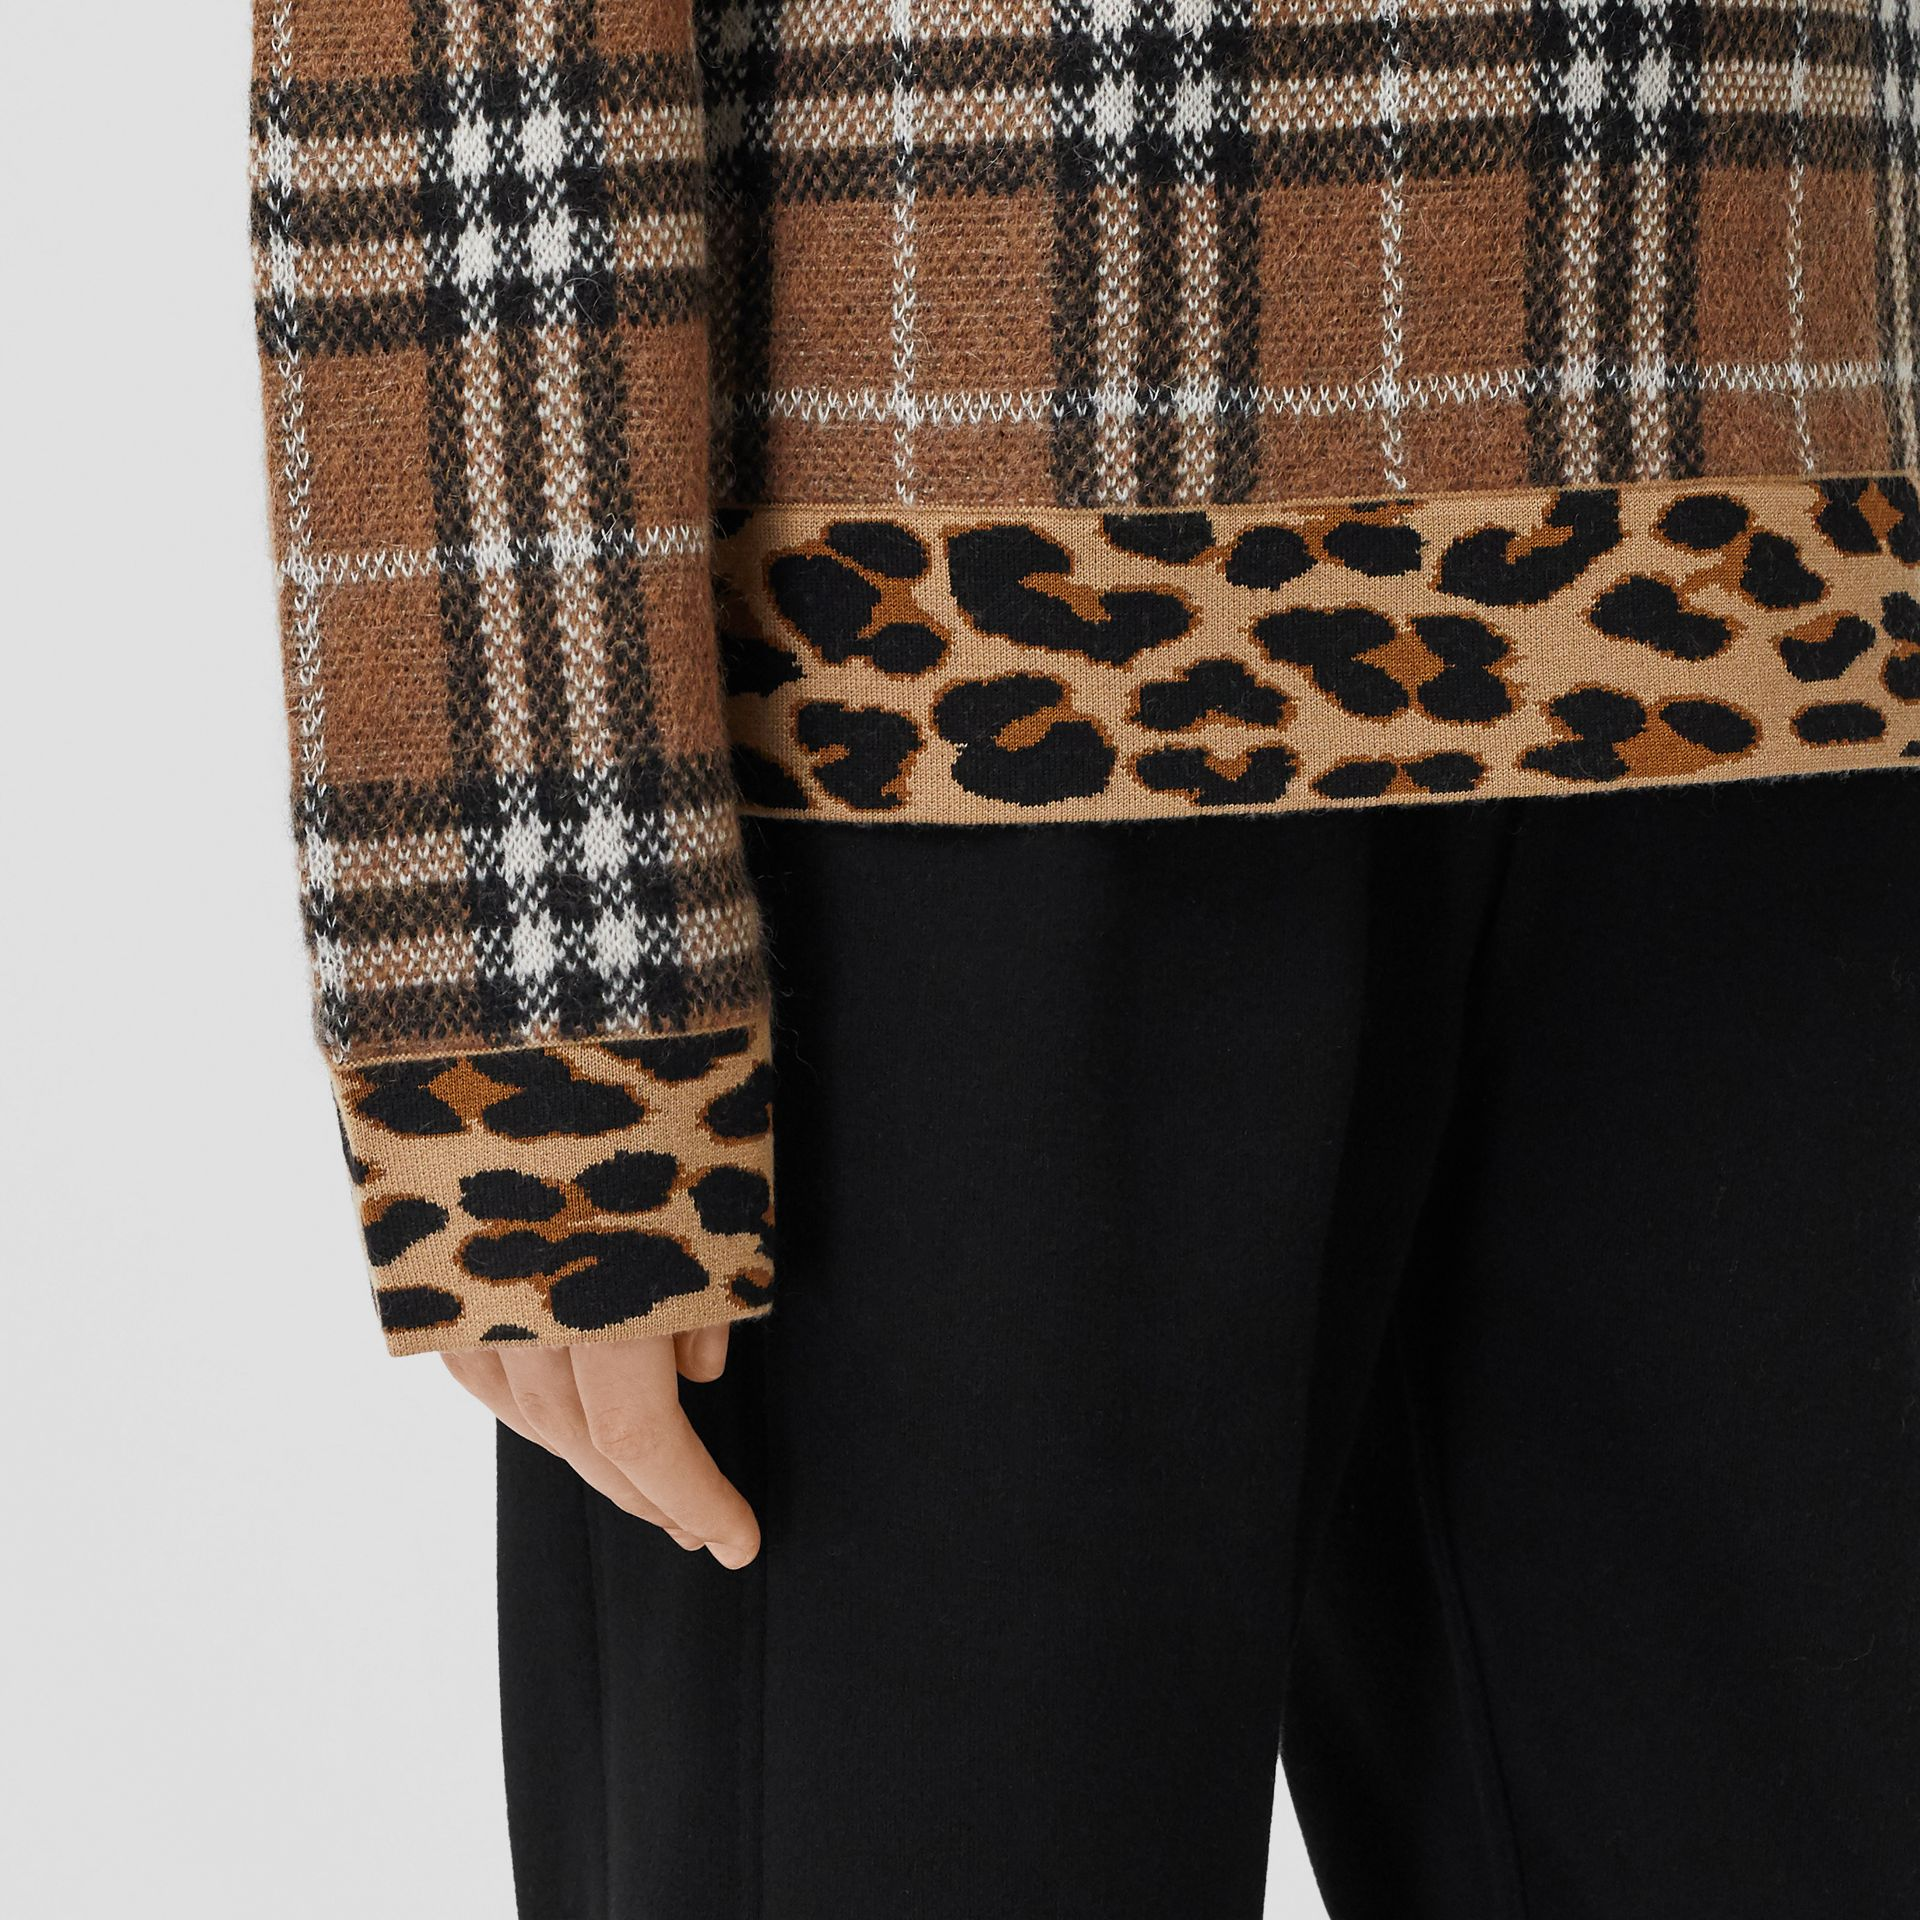 Leopard Detail Vintage Check Cashmere Blend Sweater in Archive Beige - Women | Burberry Hong Kong S.A.R - gallery image 4